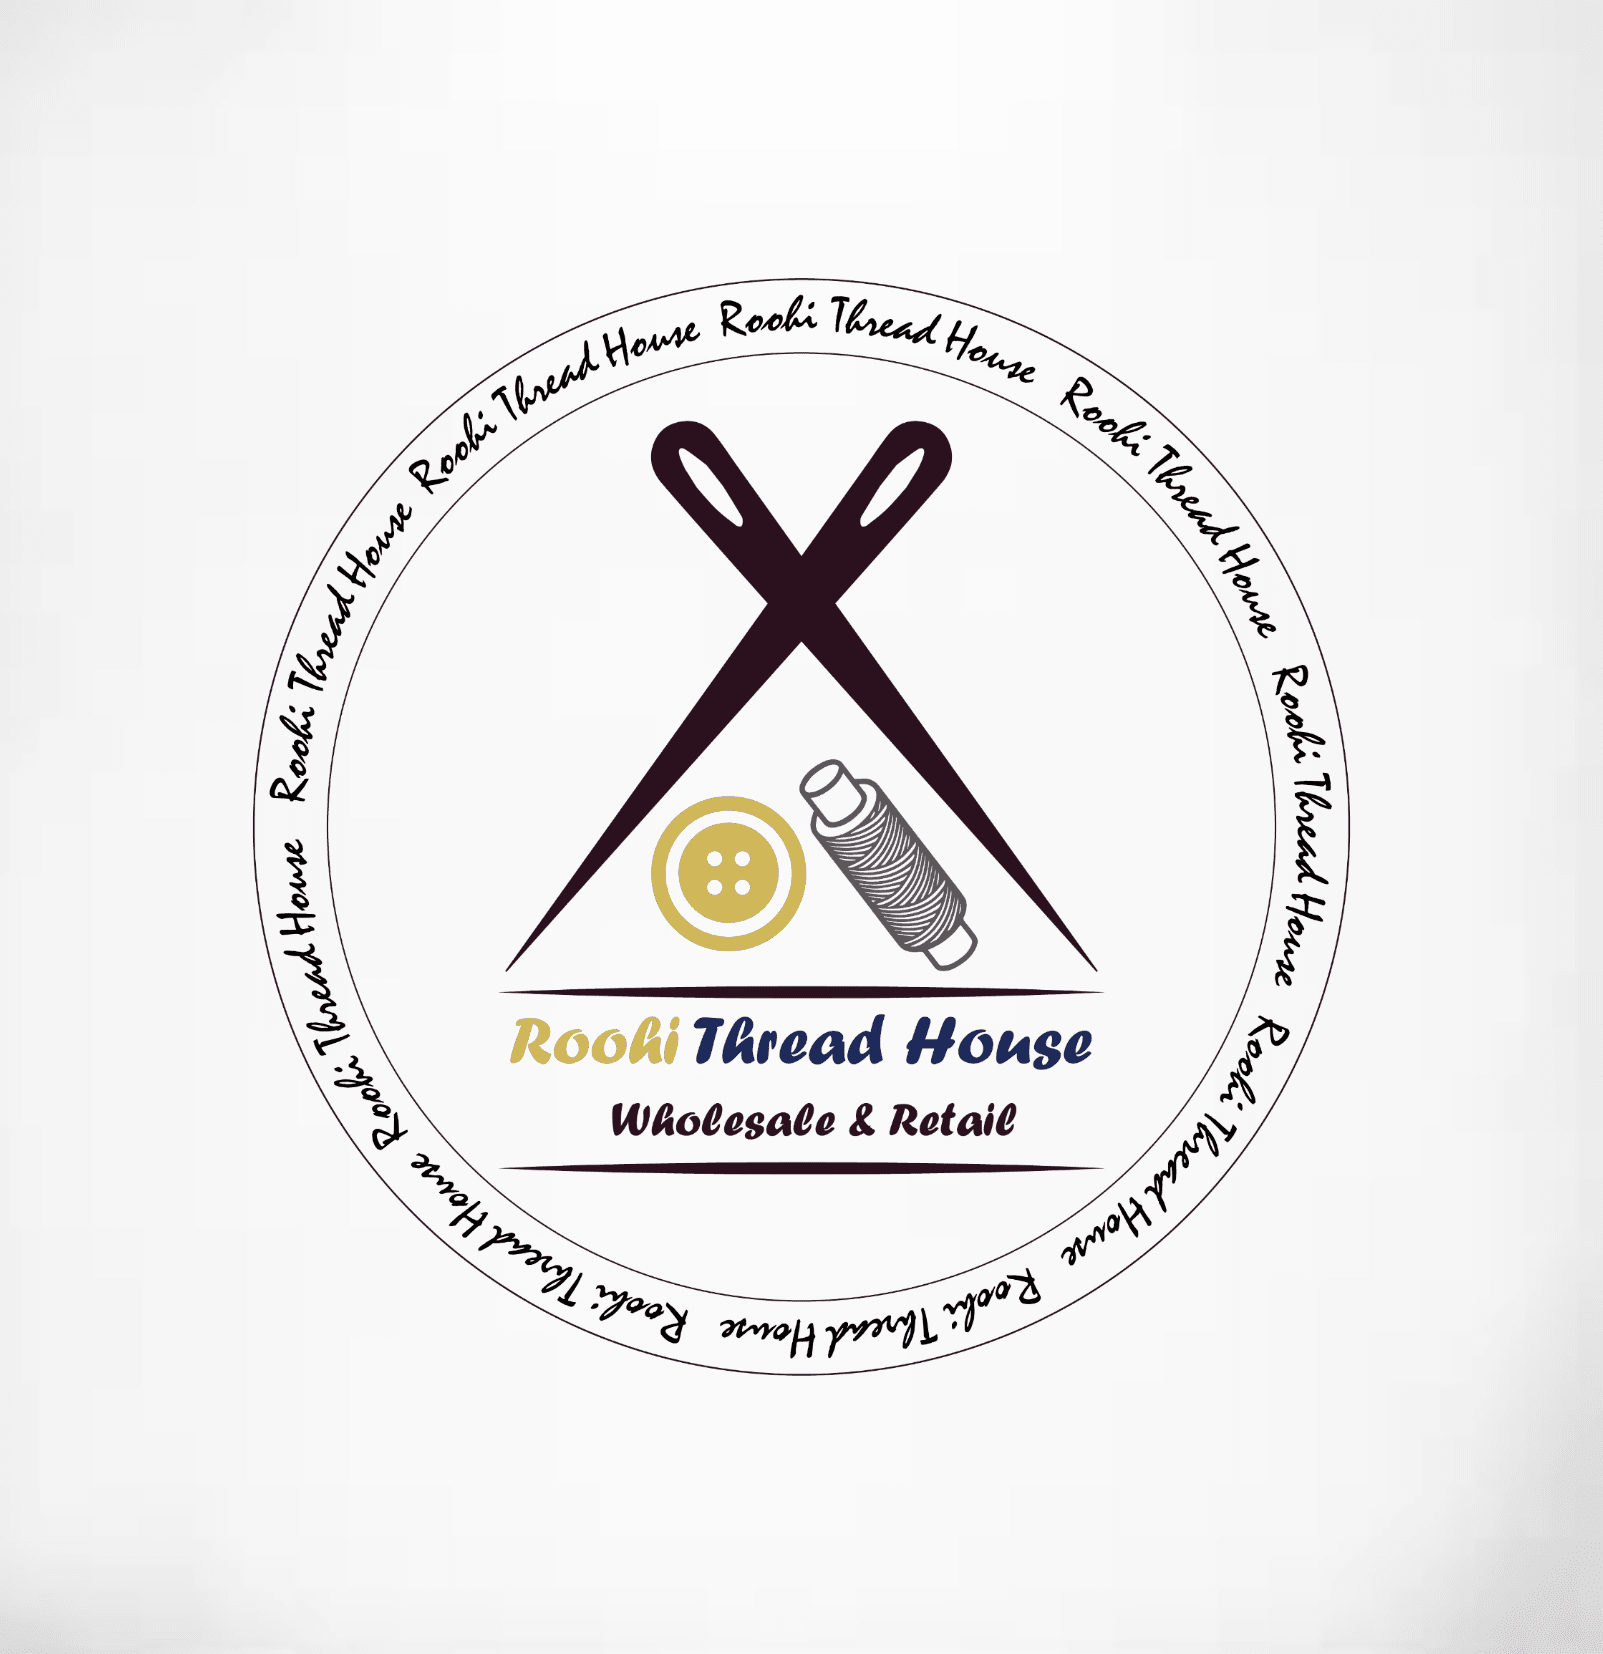 Roohi Thread House